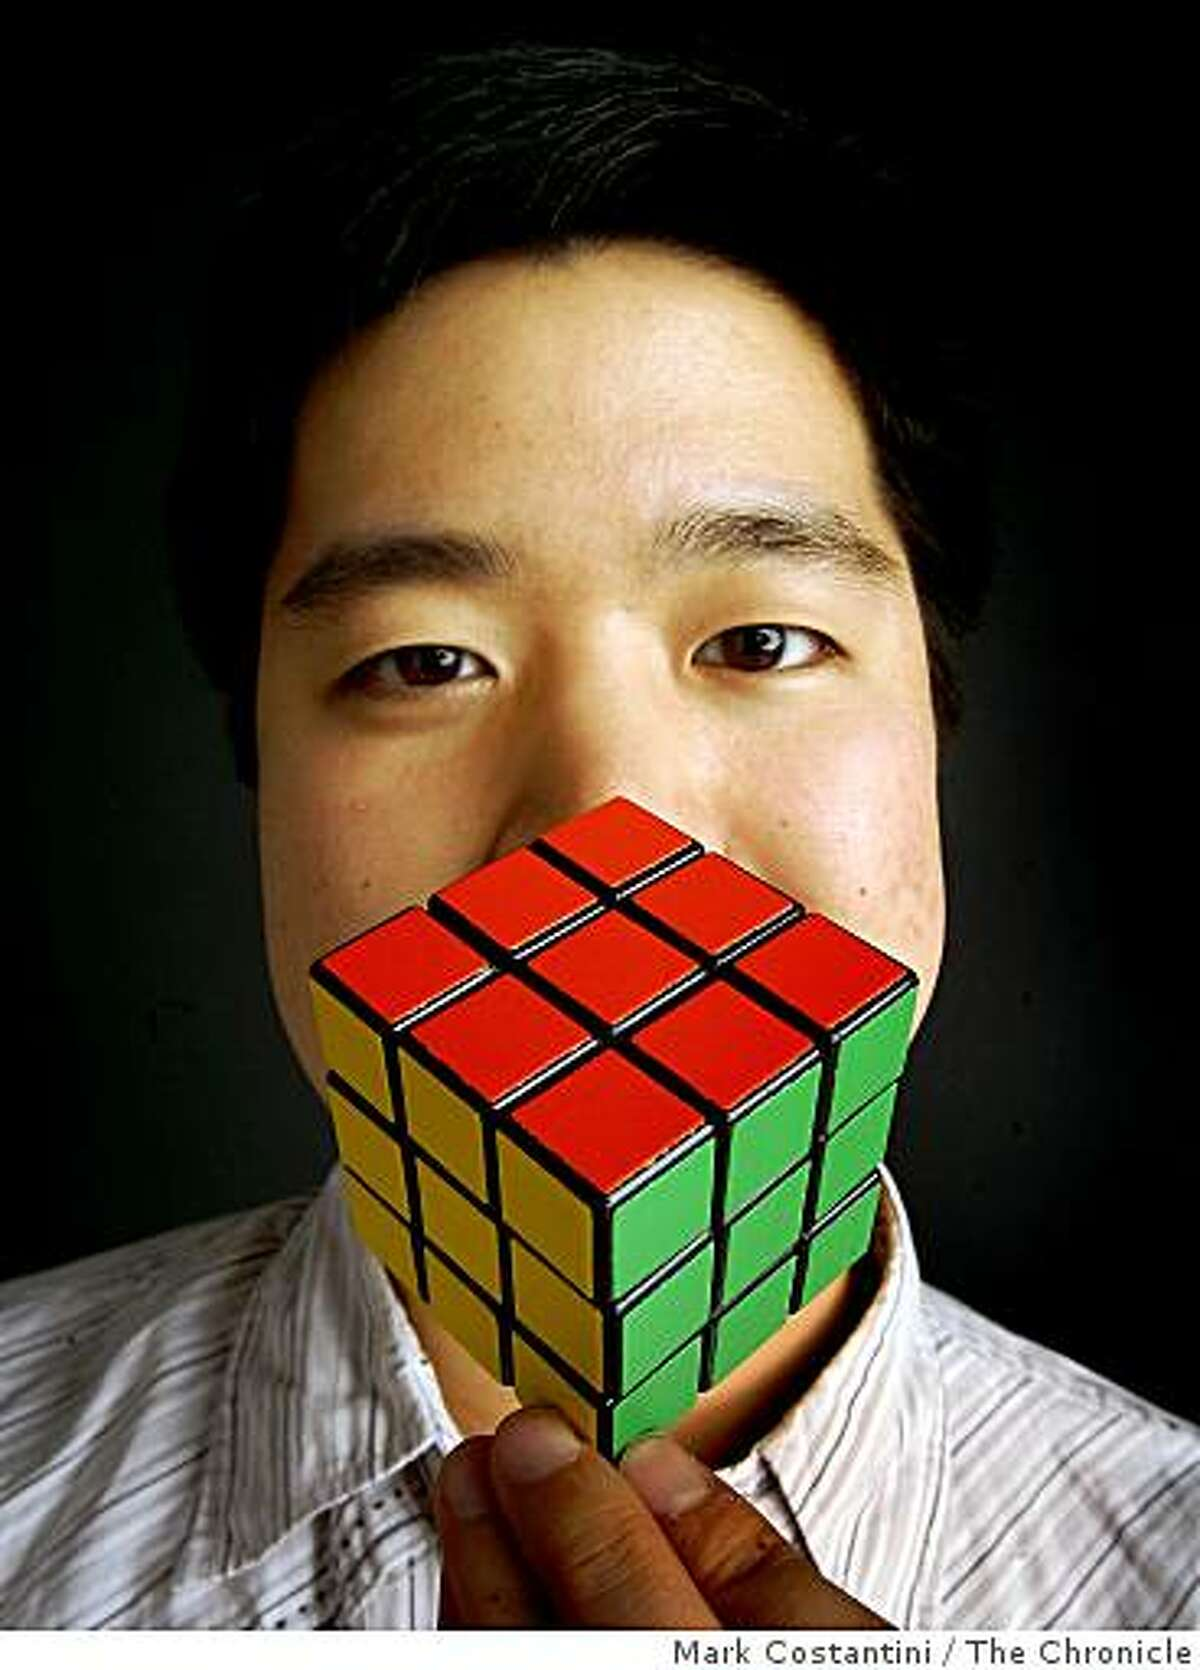 Leyan Lo and his Rubik's cube were photographed in San Francisco, Calif., on Monday, January 12, 2009.